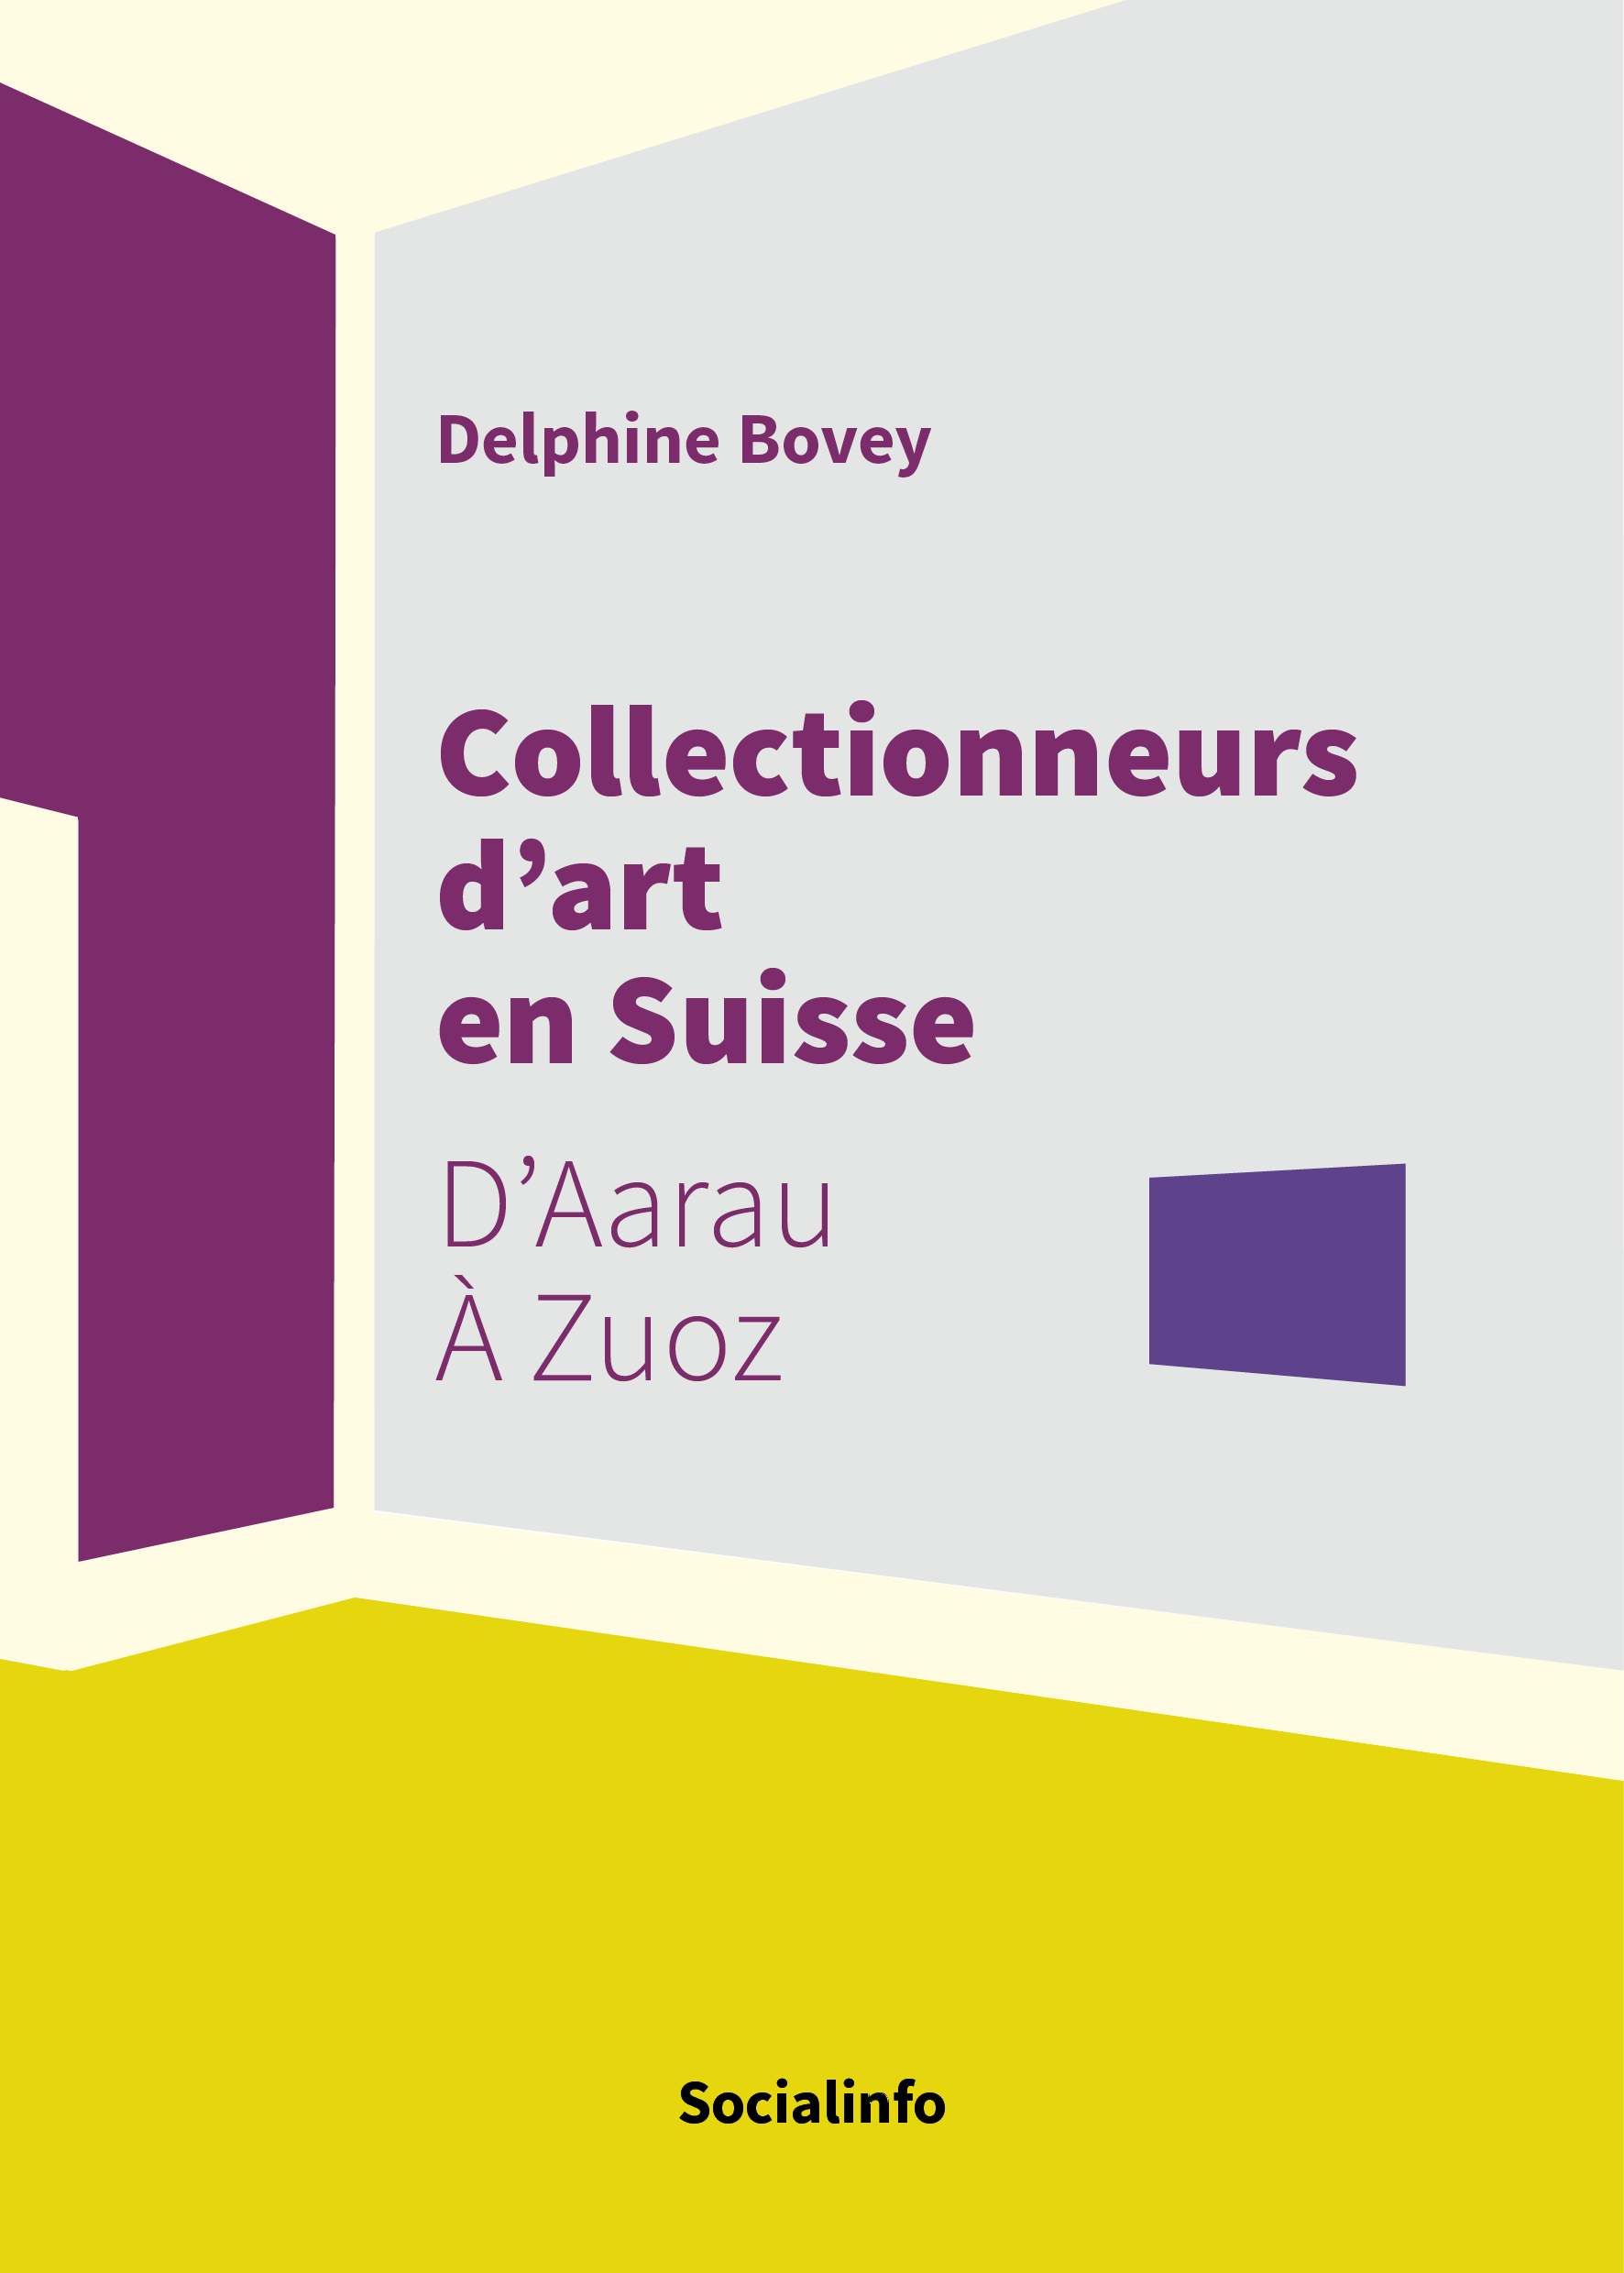 Collectionneurs d'art en Suisse. D'Aarau à Zuoz